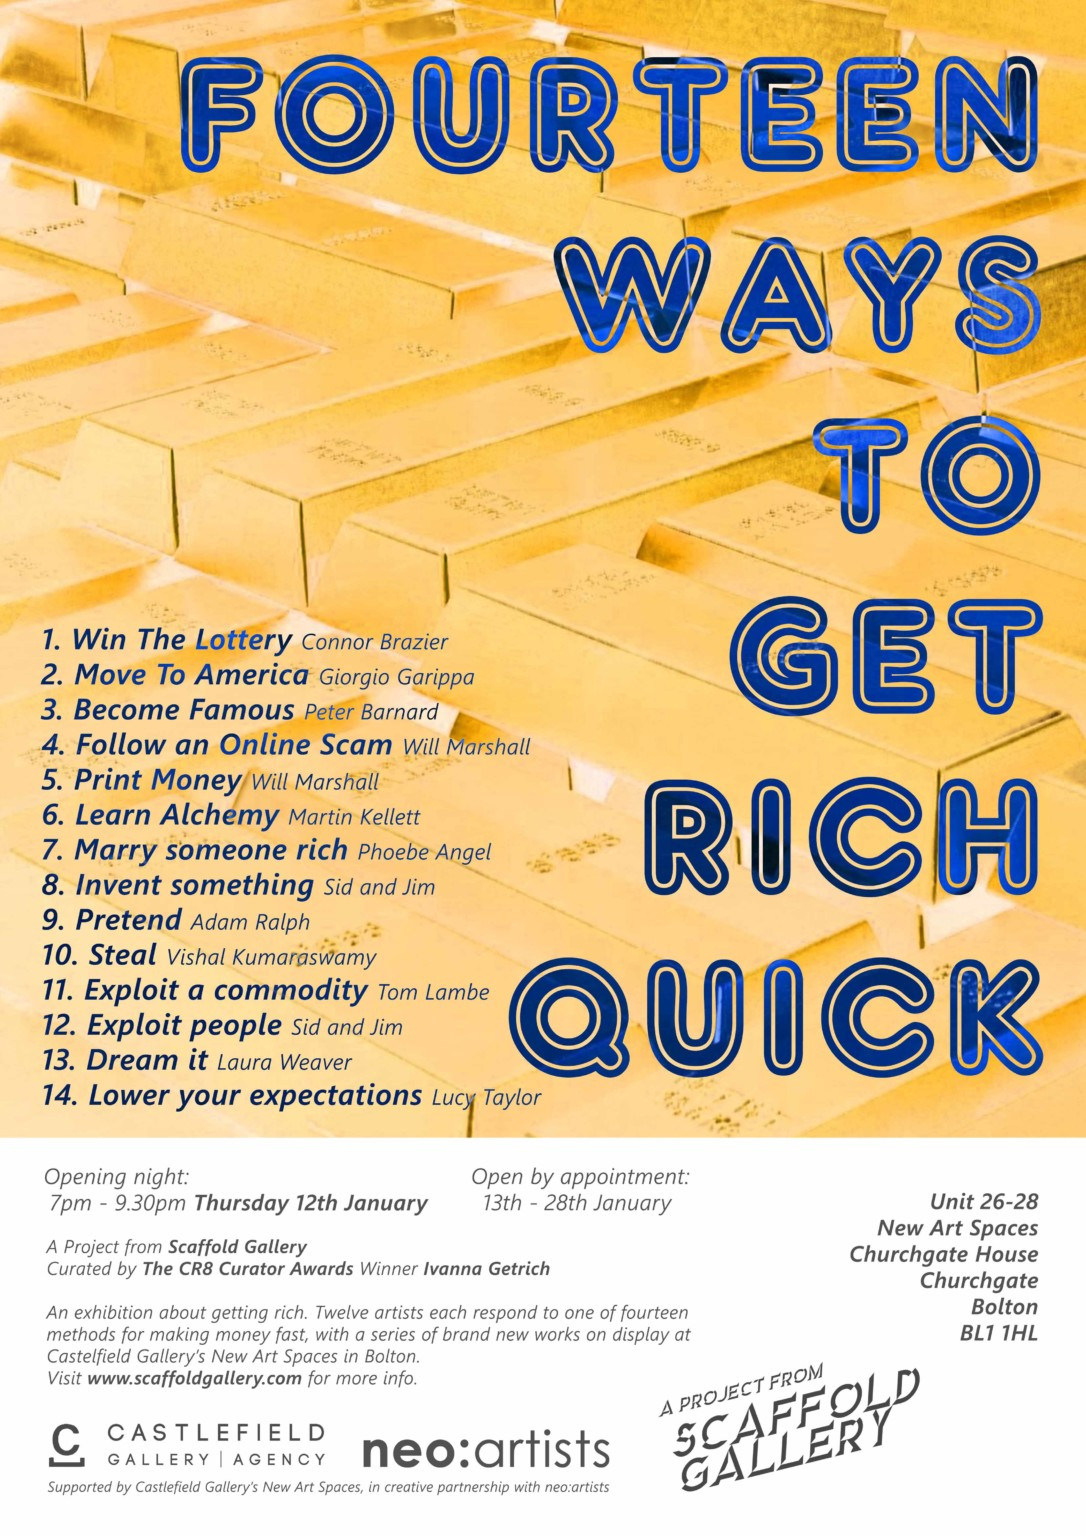 Forum on this topic: How to Get Rich Quick, how-to-get-rich-quick/